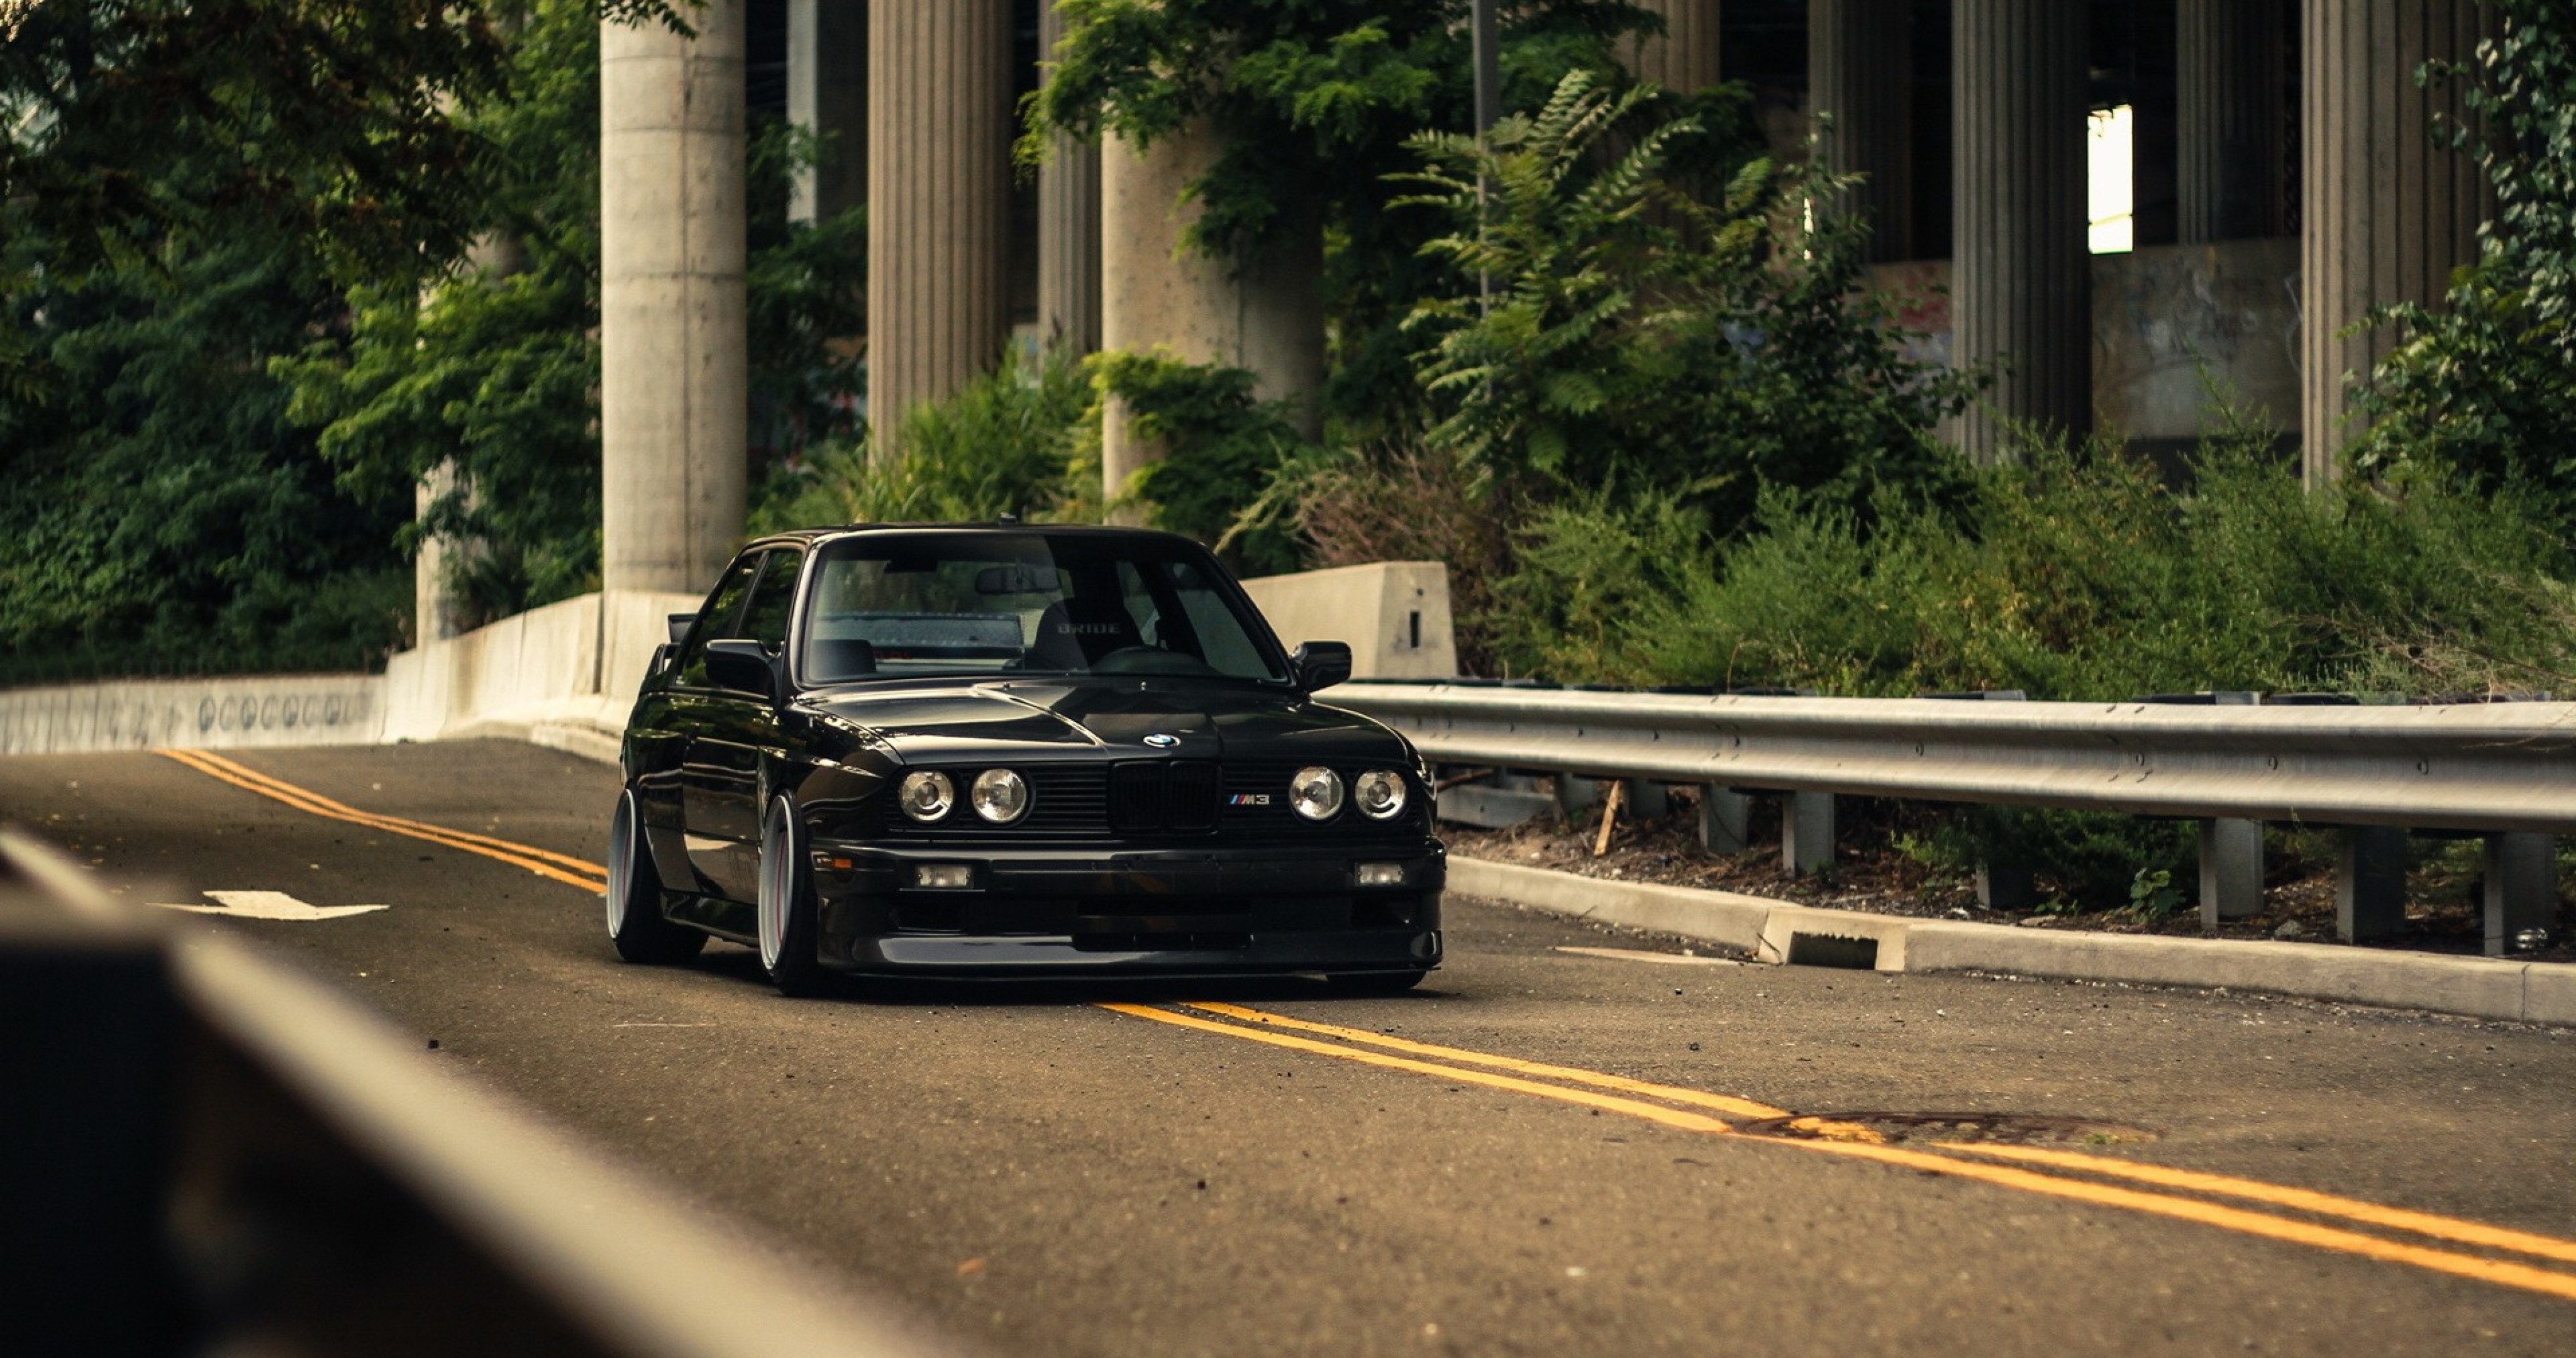 Bmw E30 Wallpapers Hd Page 2 Of 3 Wallpaper Wiki